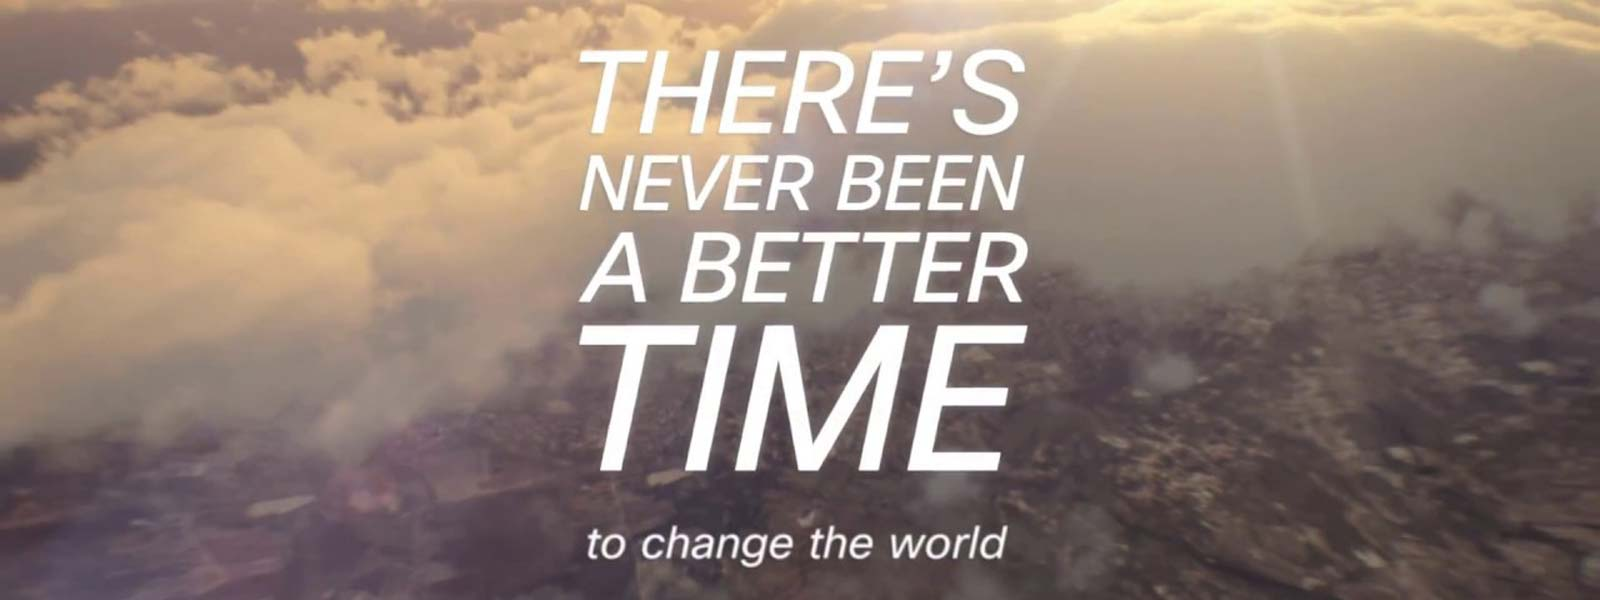 There's-never-been-a-better-time-to-change-the-world